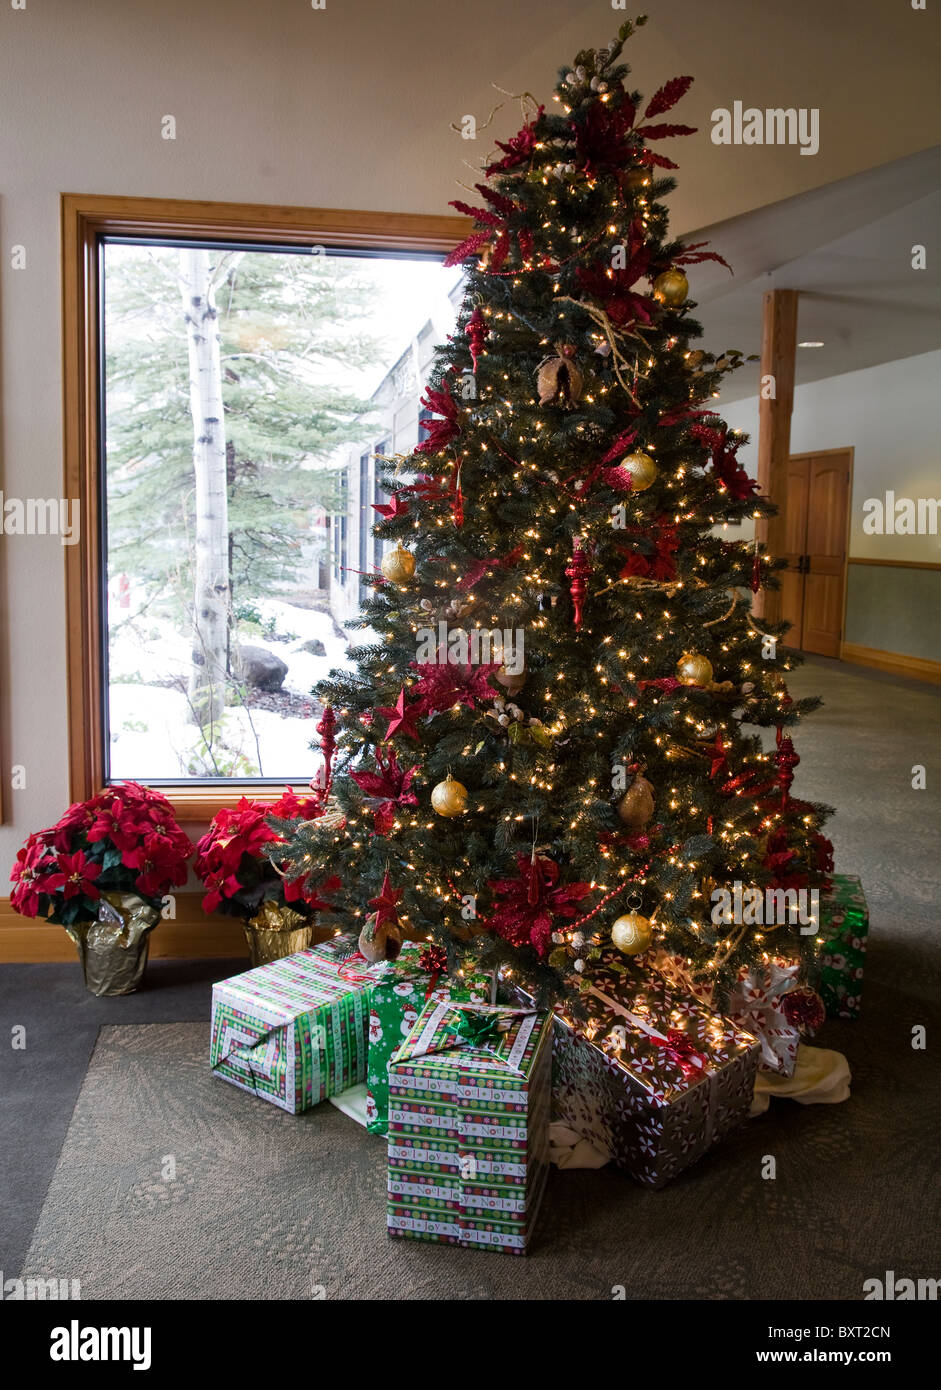 A christmas tree decorated with ornaments in a living room